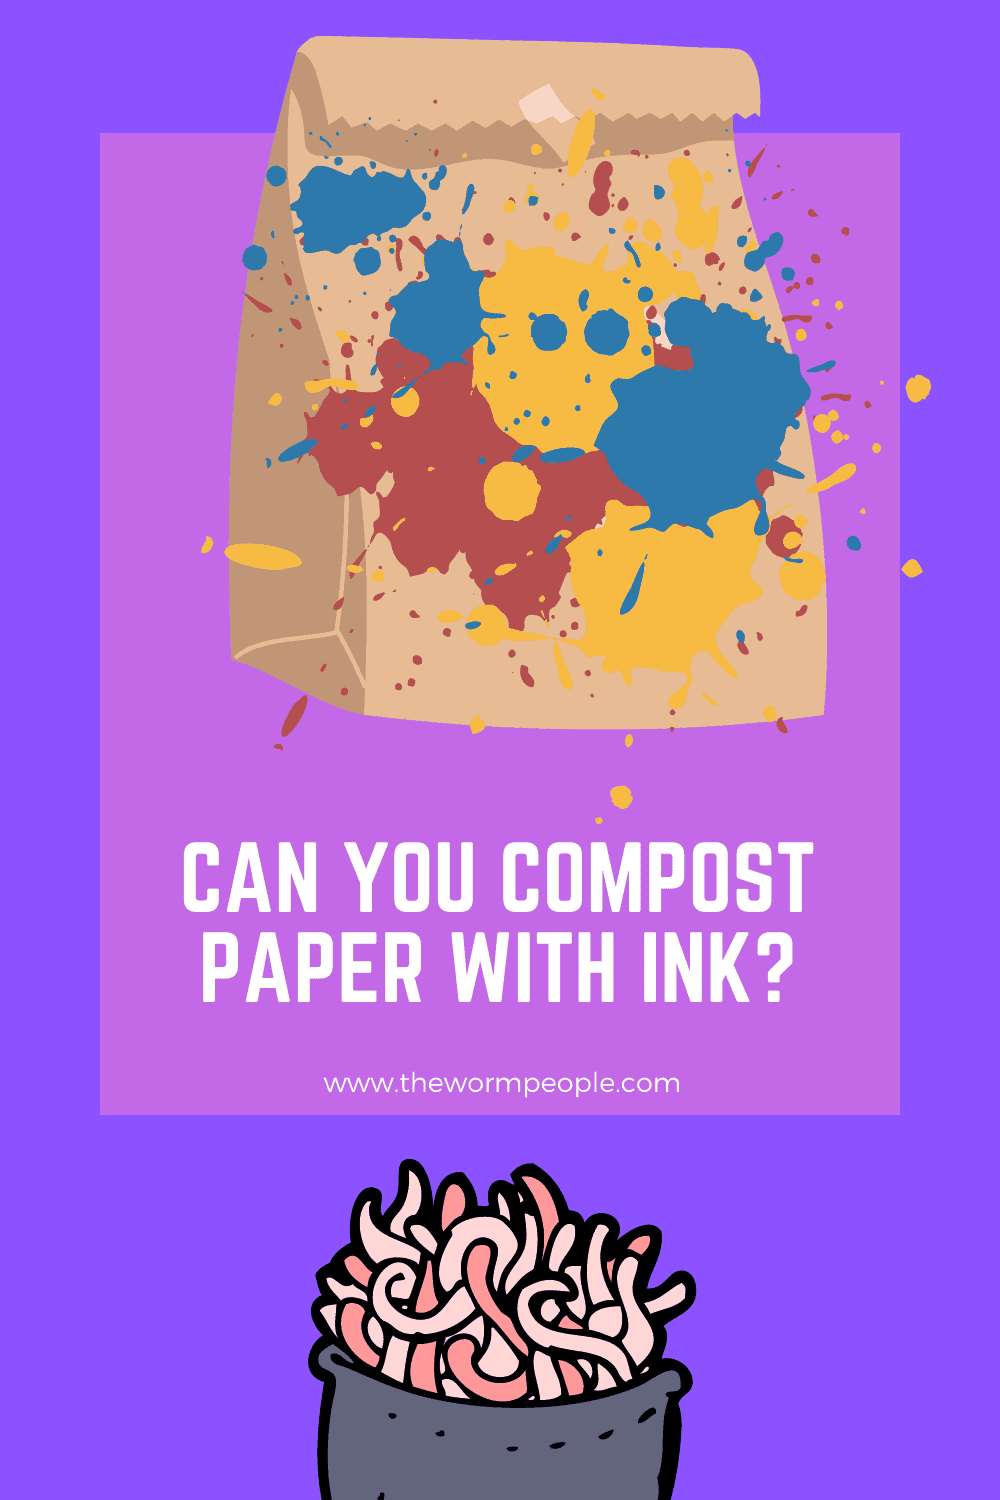 Can You Compost Paper with Ink?